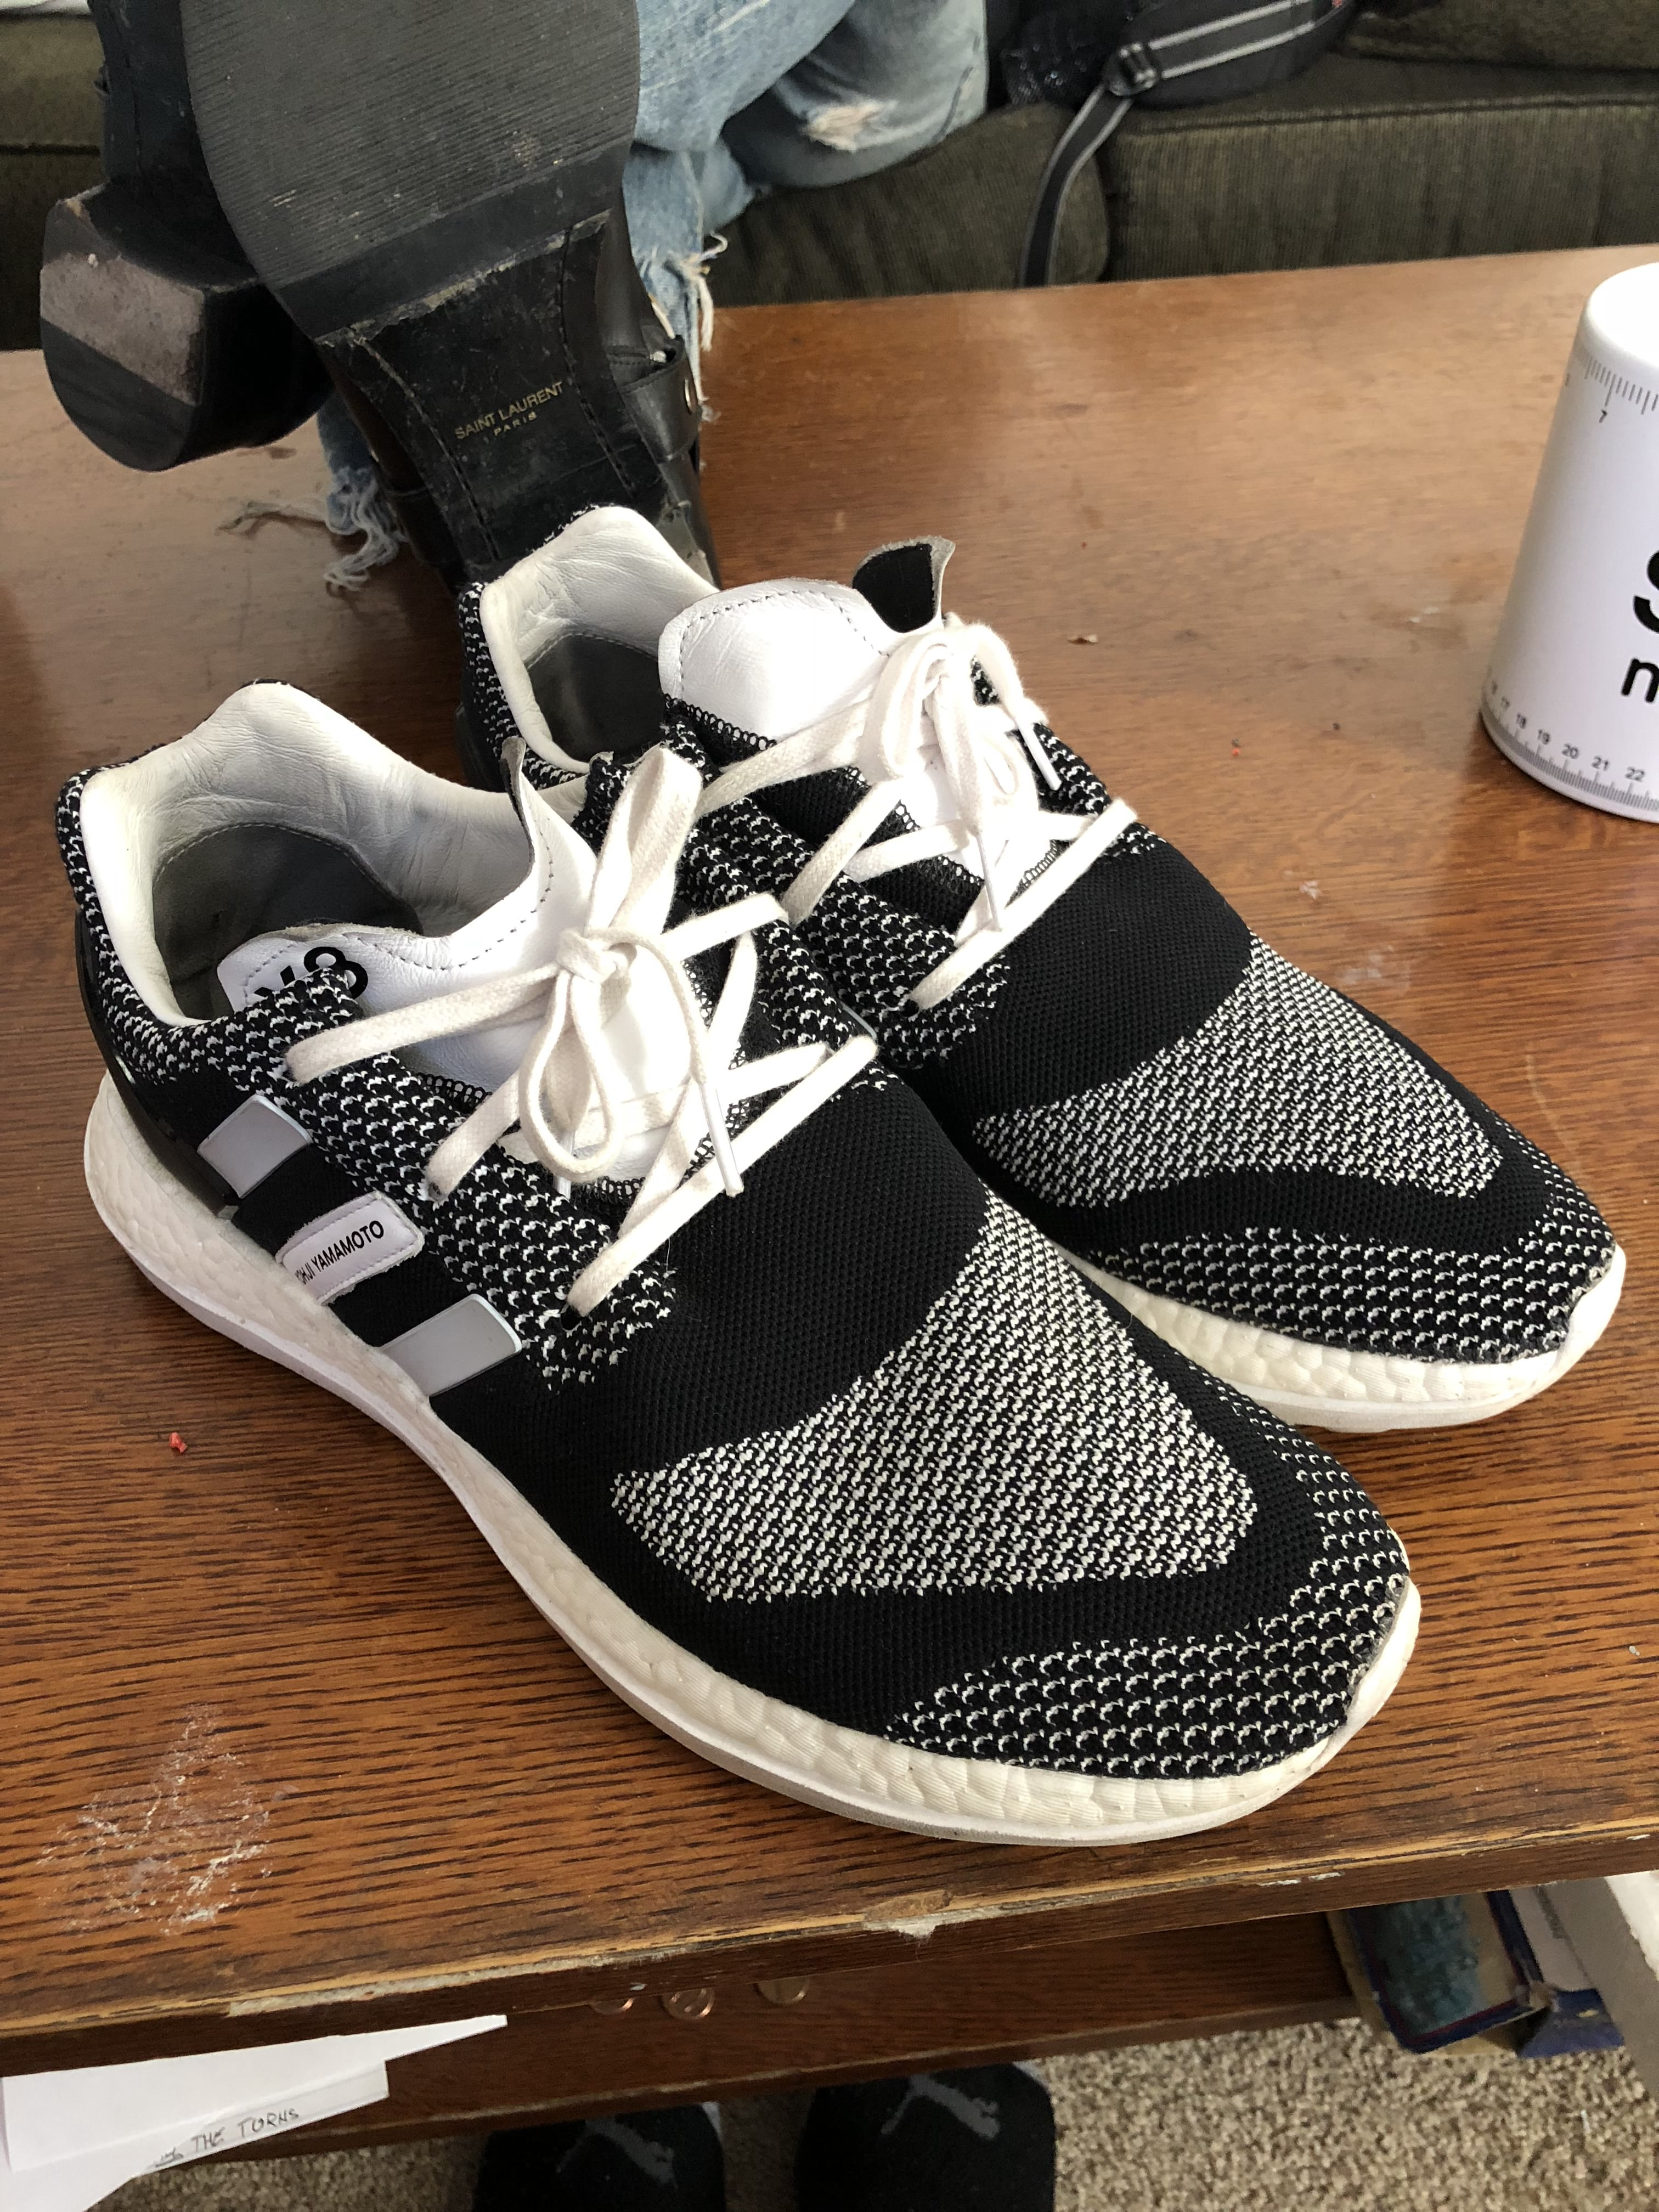 c981f9a50 Adidas Y-3 Pure Boost Zg Knit White Black Oreo Size 11.5 - Low-Top ...